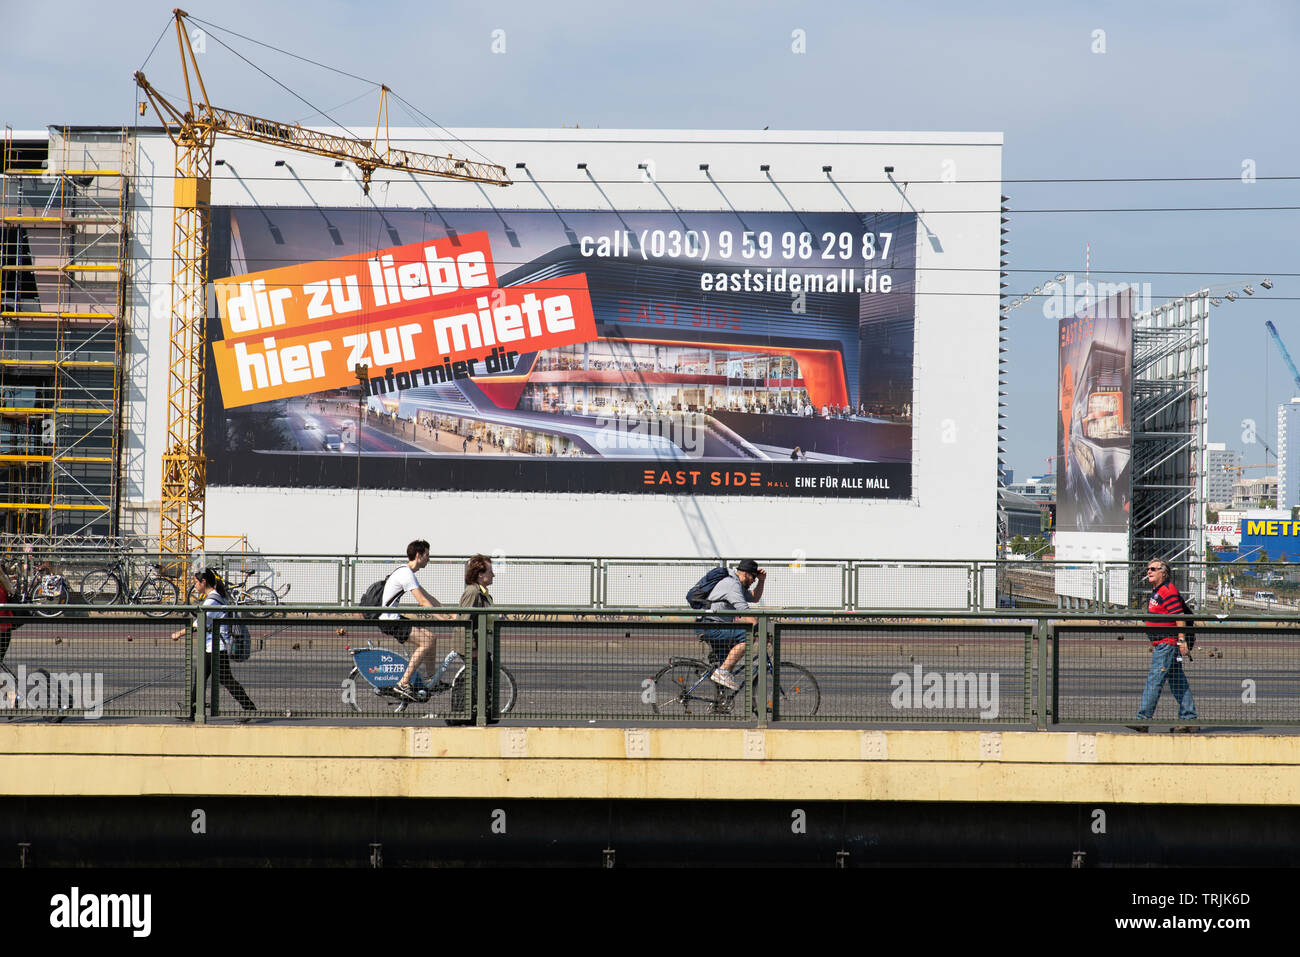 Cyclists and pedestrians pass in front of an advertising for a new shopping mall being built at Warschawer strasse, Berlin. // Radfahrer und Fußgänger - Stock Image